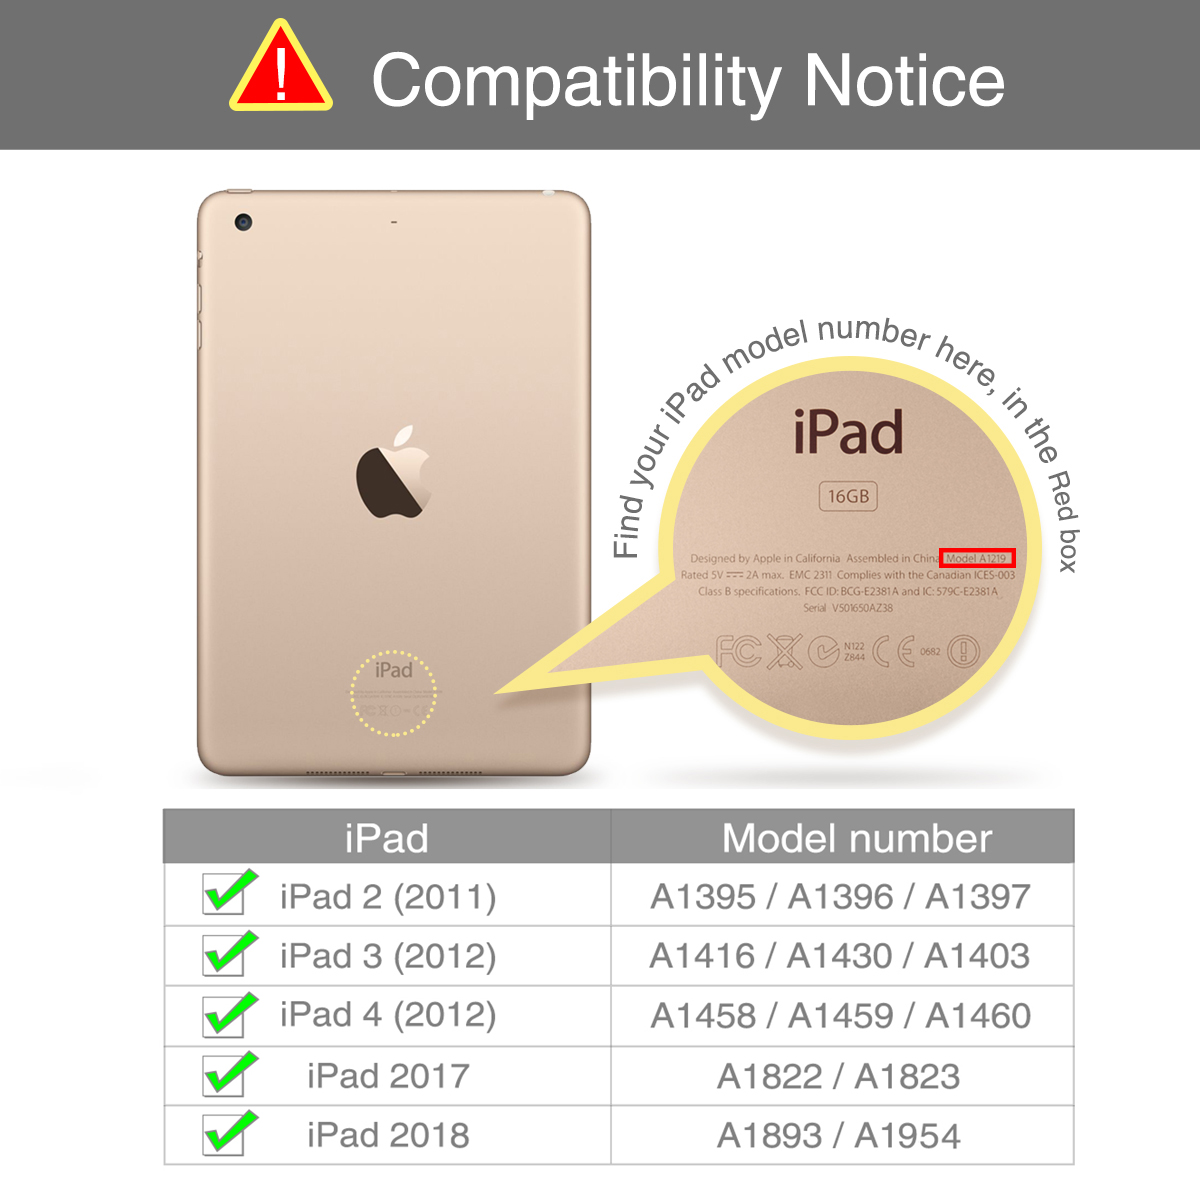 PU Leather High Quality Smart Case For IPad Air1 2 Pro9 7 Ipad 2017 2018 Adjust Viewing Angle Foldable Case for Ipad 5 6 in Tablets e Books Case from Computer Office